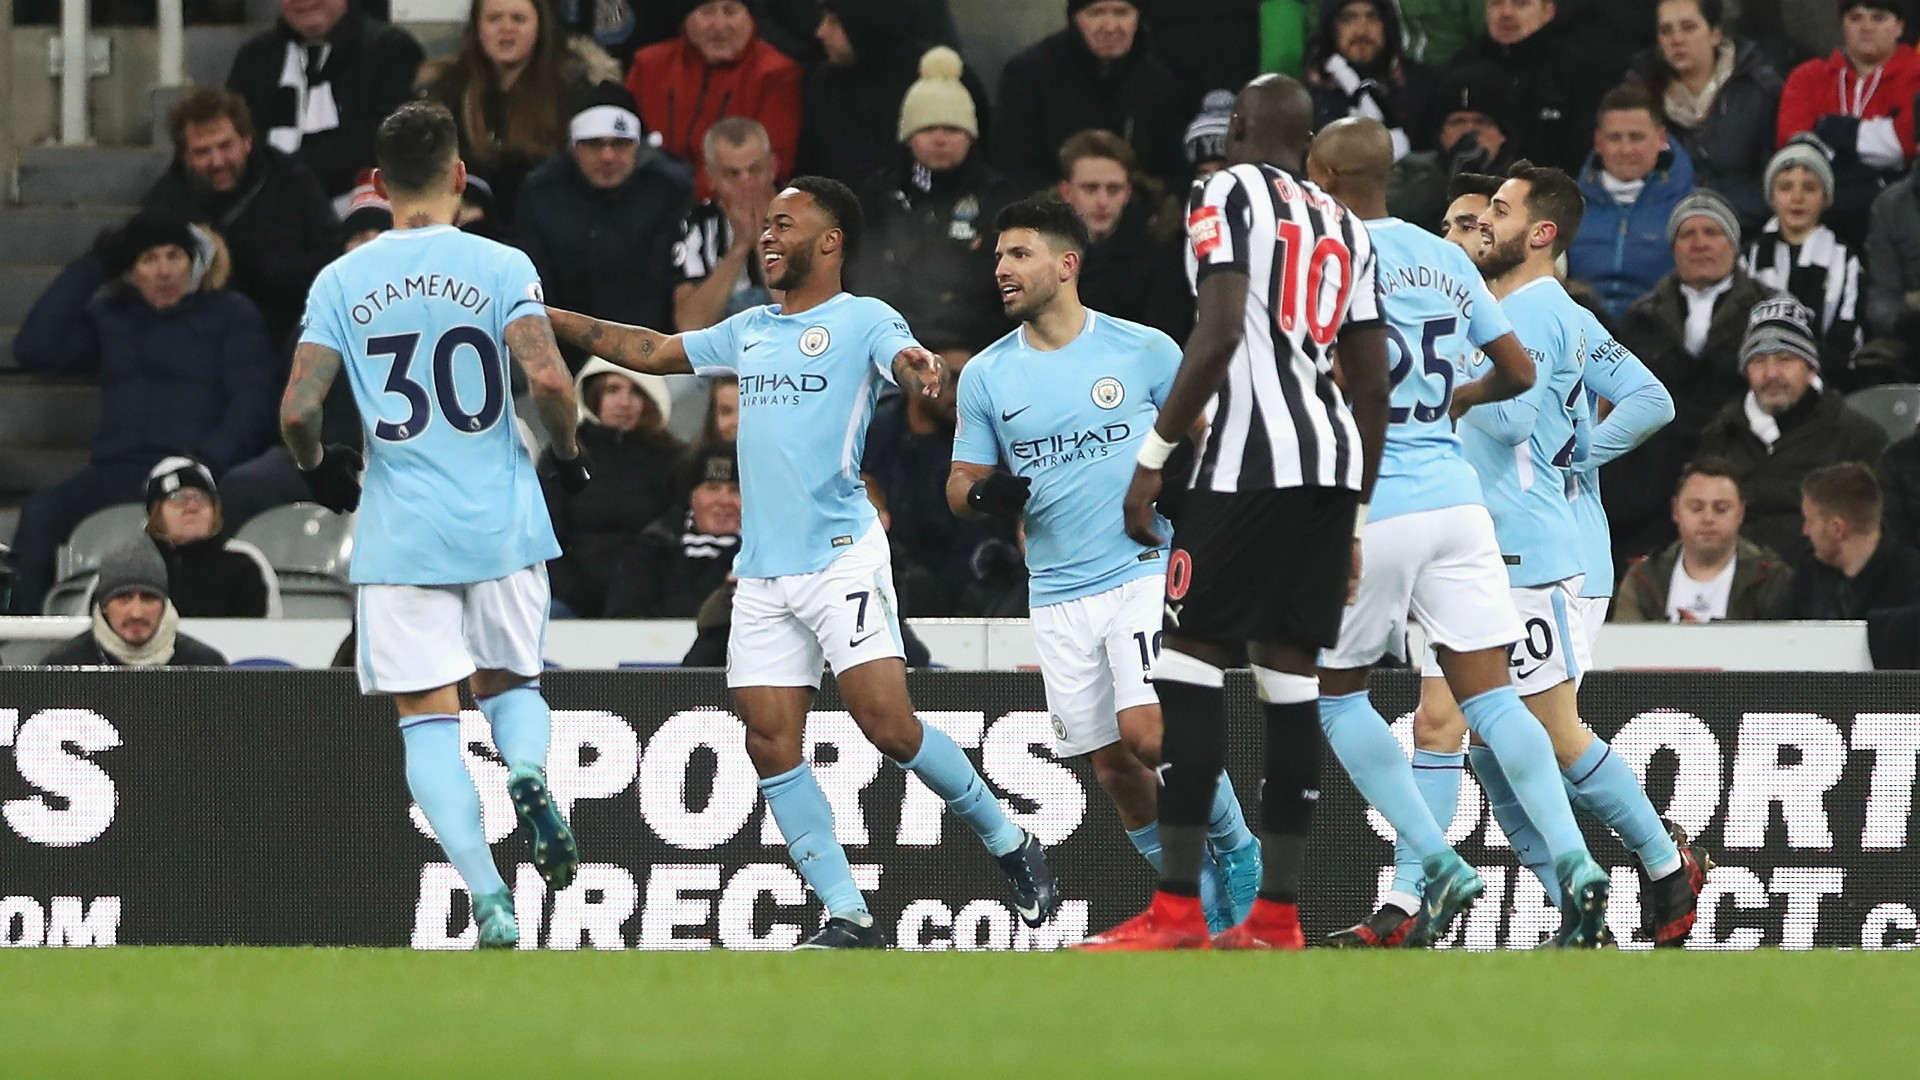 Download Newcastle United 0-1 Manchester City (EPL) Highlights